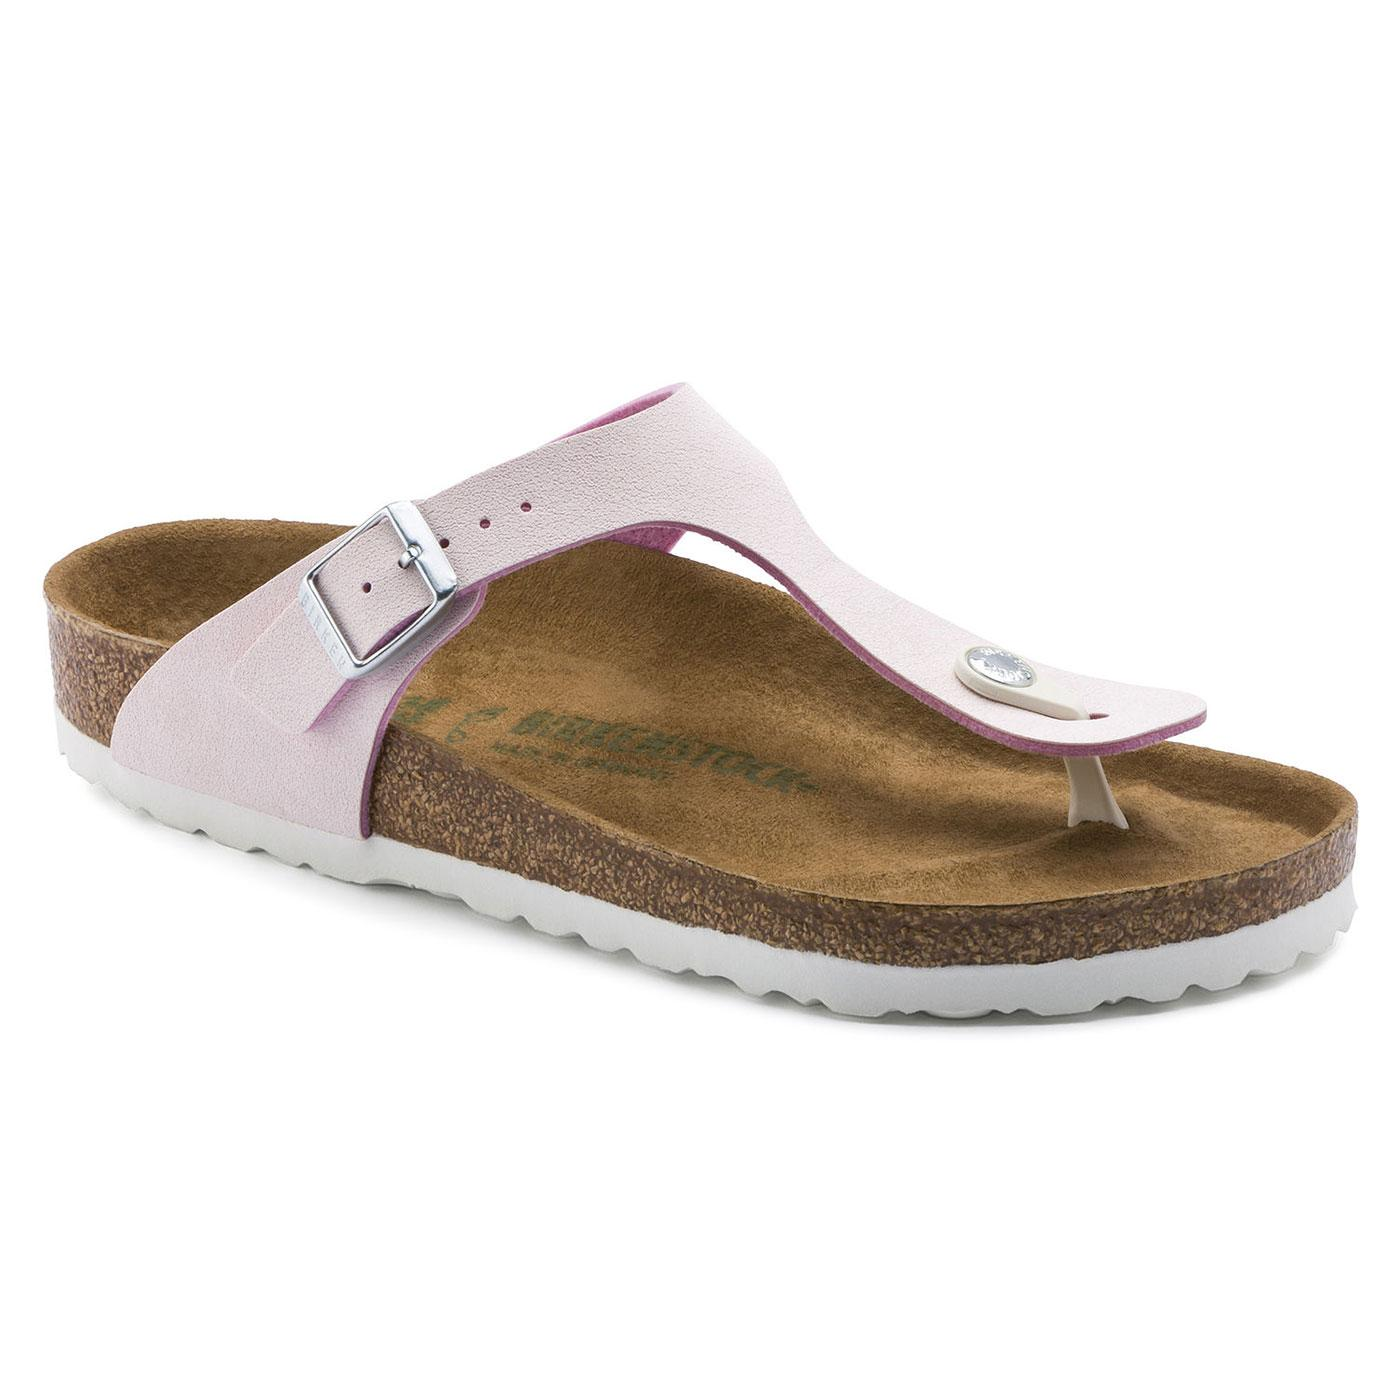 Gizeh Vegan BF BIRKENSTOCK Womens Retro Sandals BR